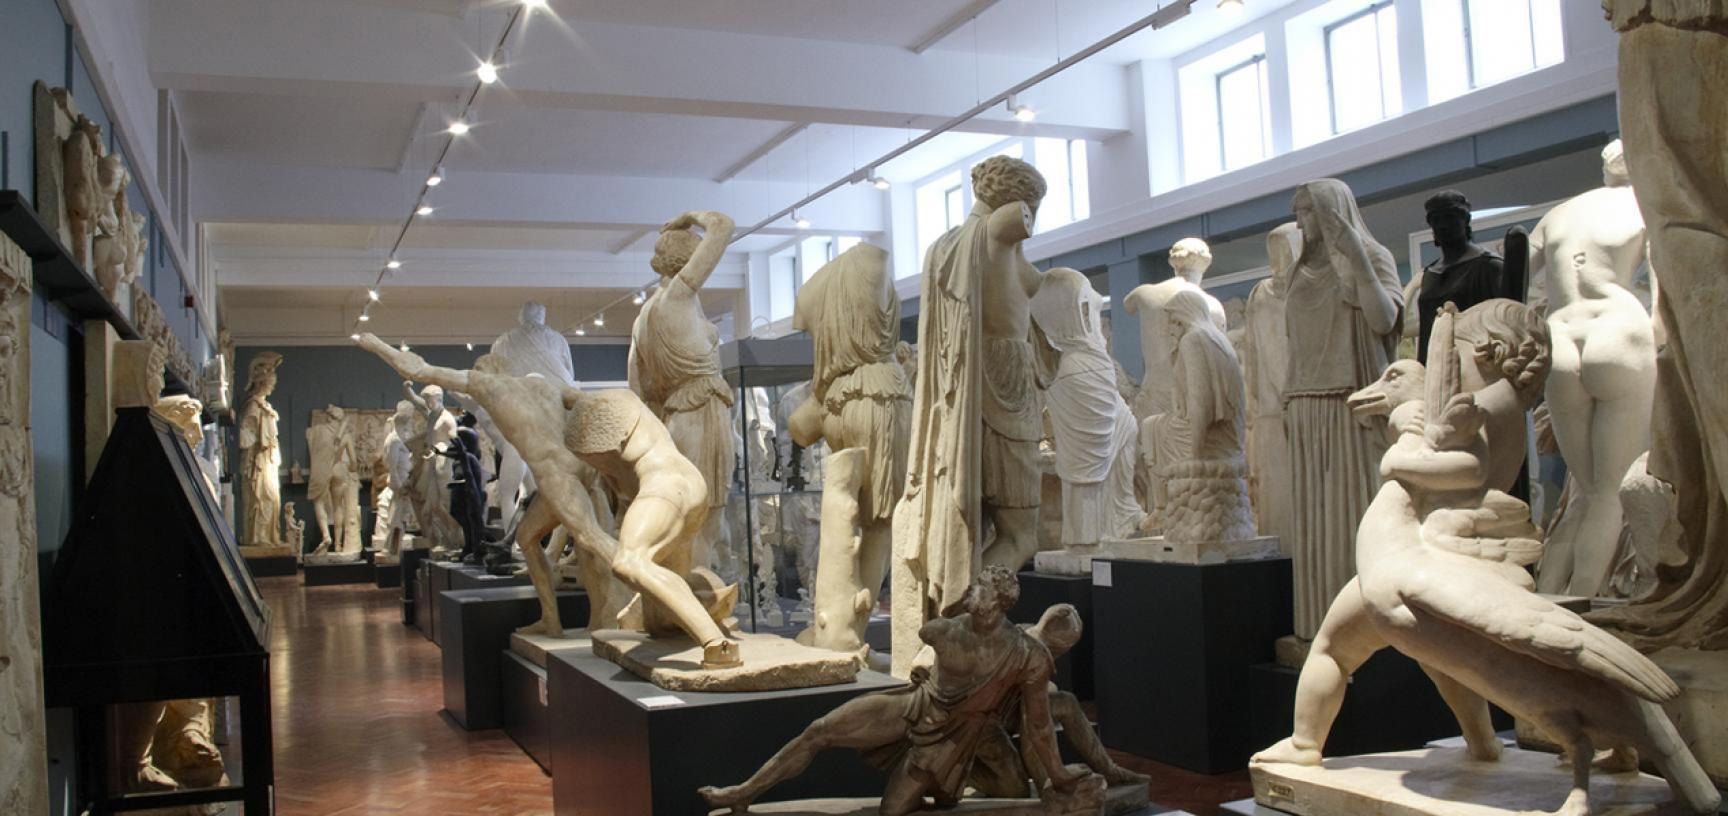 The Cast Gallery at the Ashmolean Museum